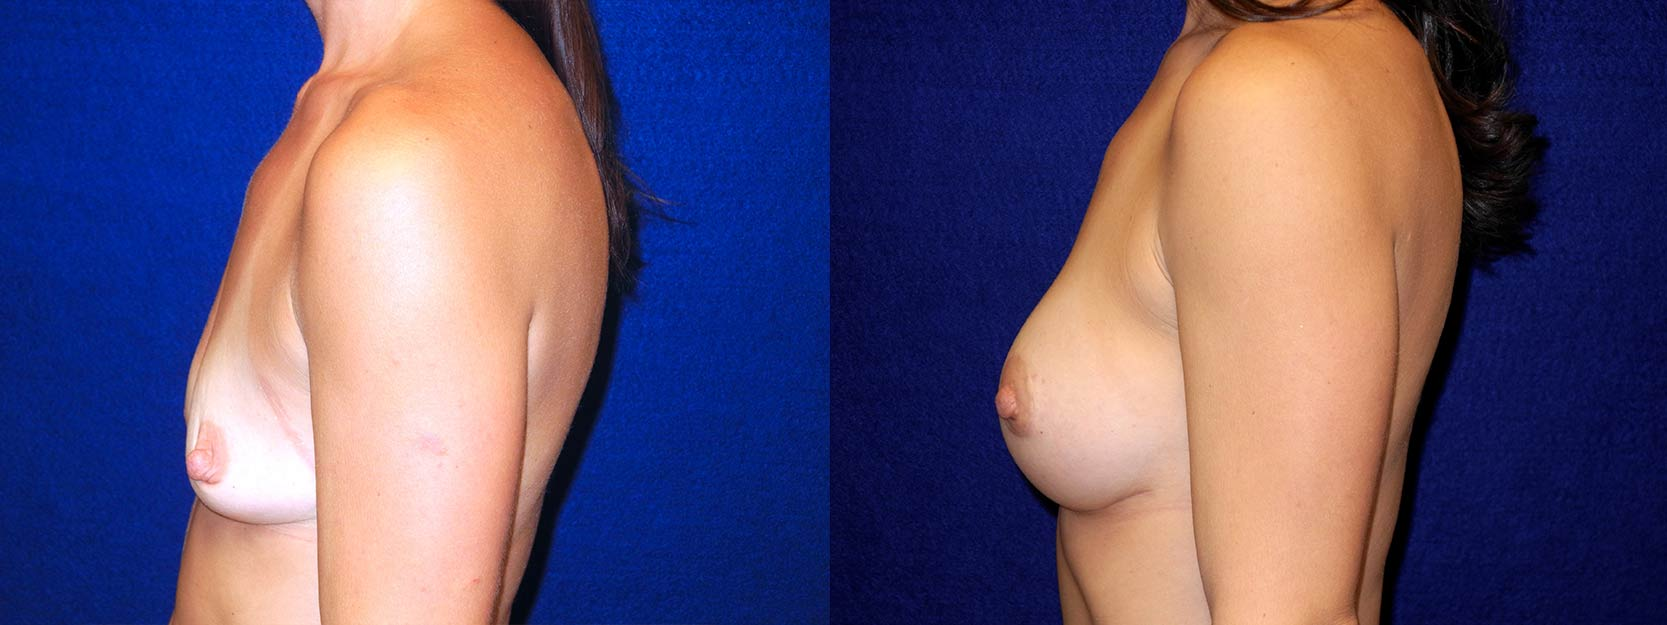 Left Profile View - Breast Augmentation with periareolar Lift After Pregnancy with Silicone Implants